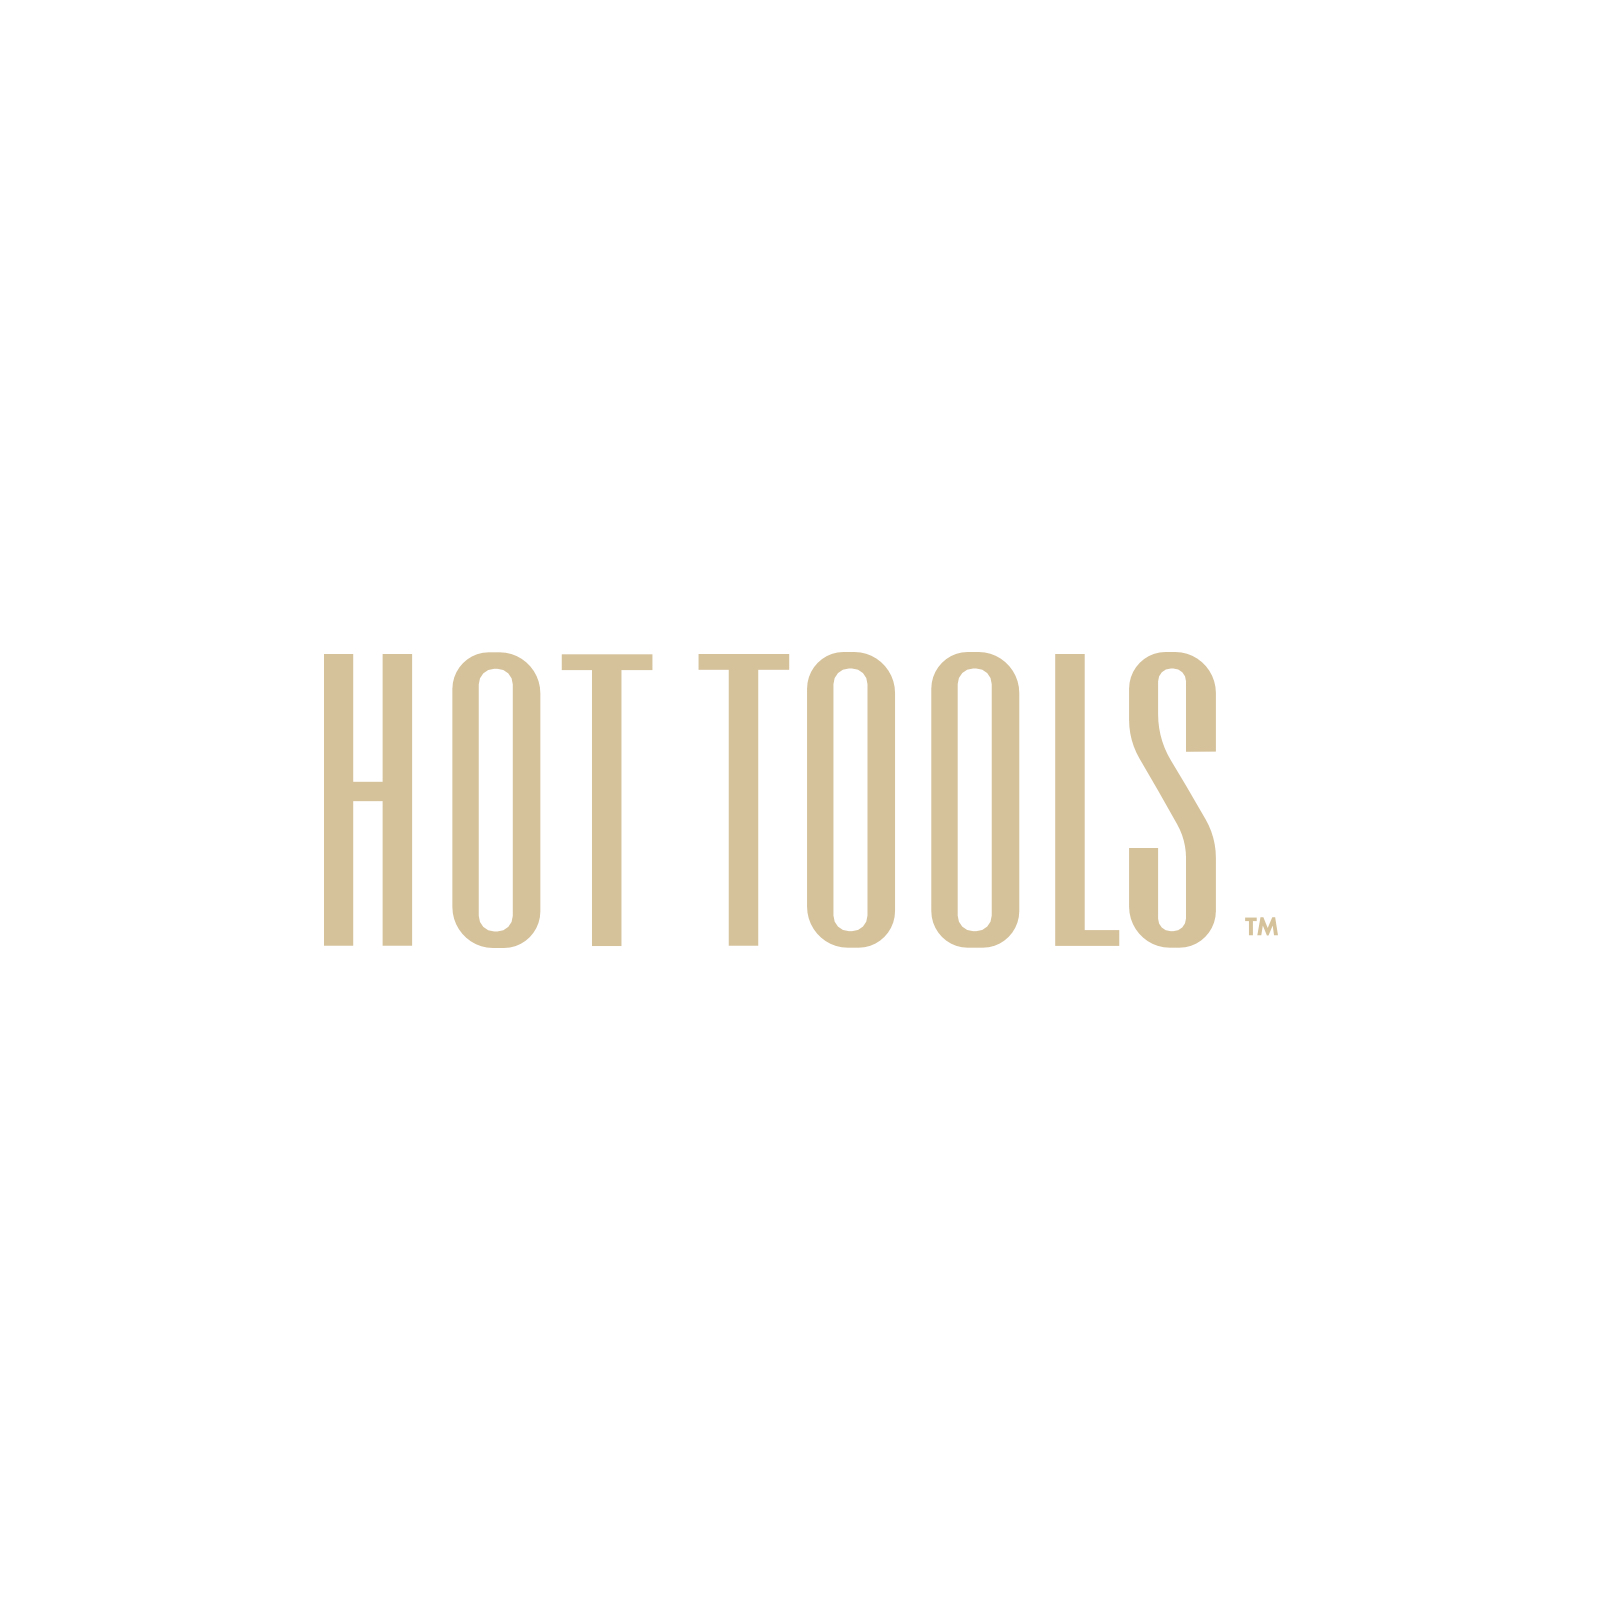 HOT TOOLS Signature Series Gold Flipperless Curling Iron, 1 ½ Inches